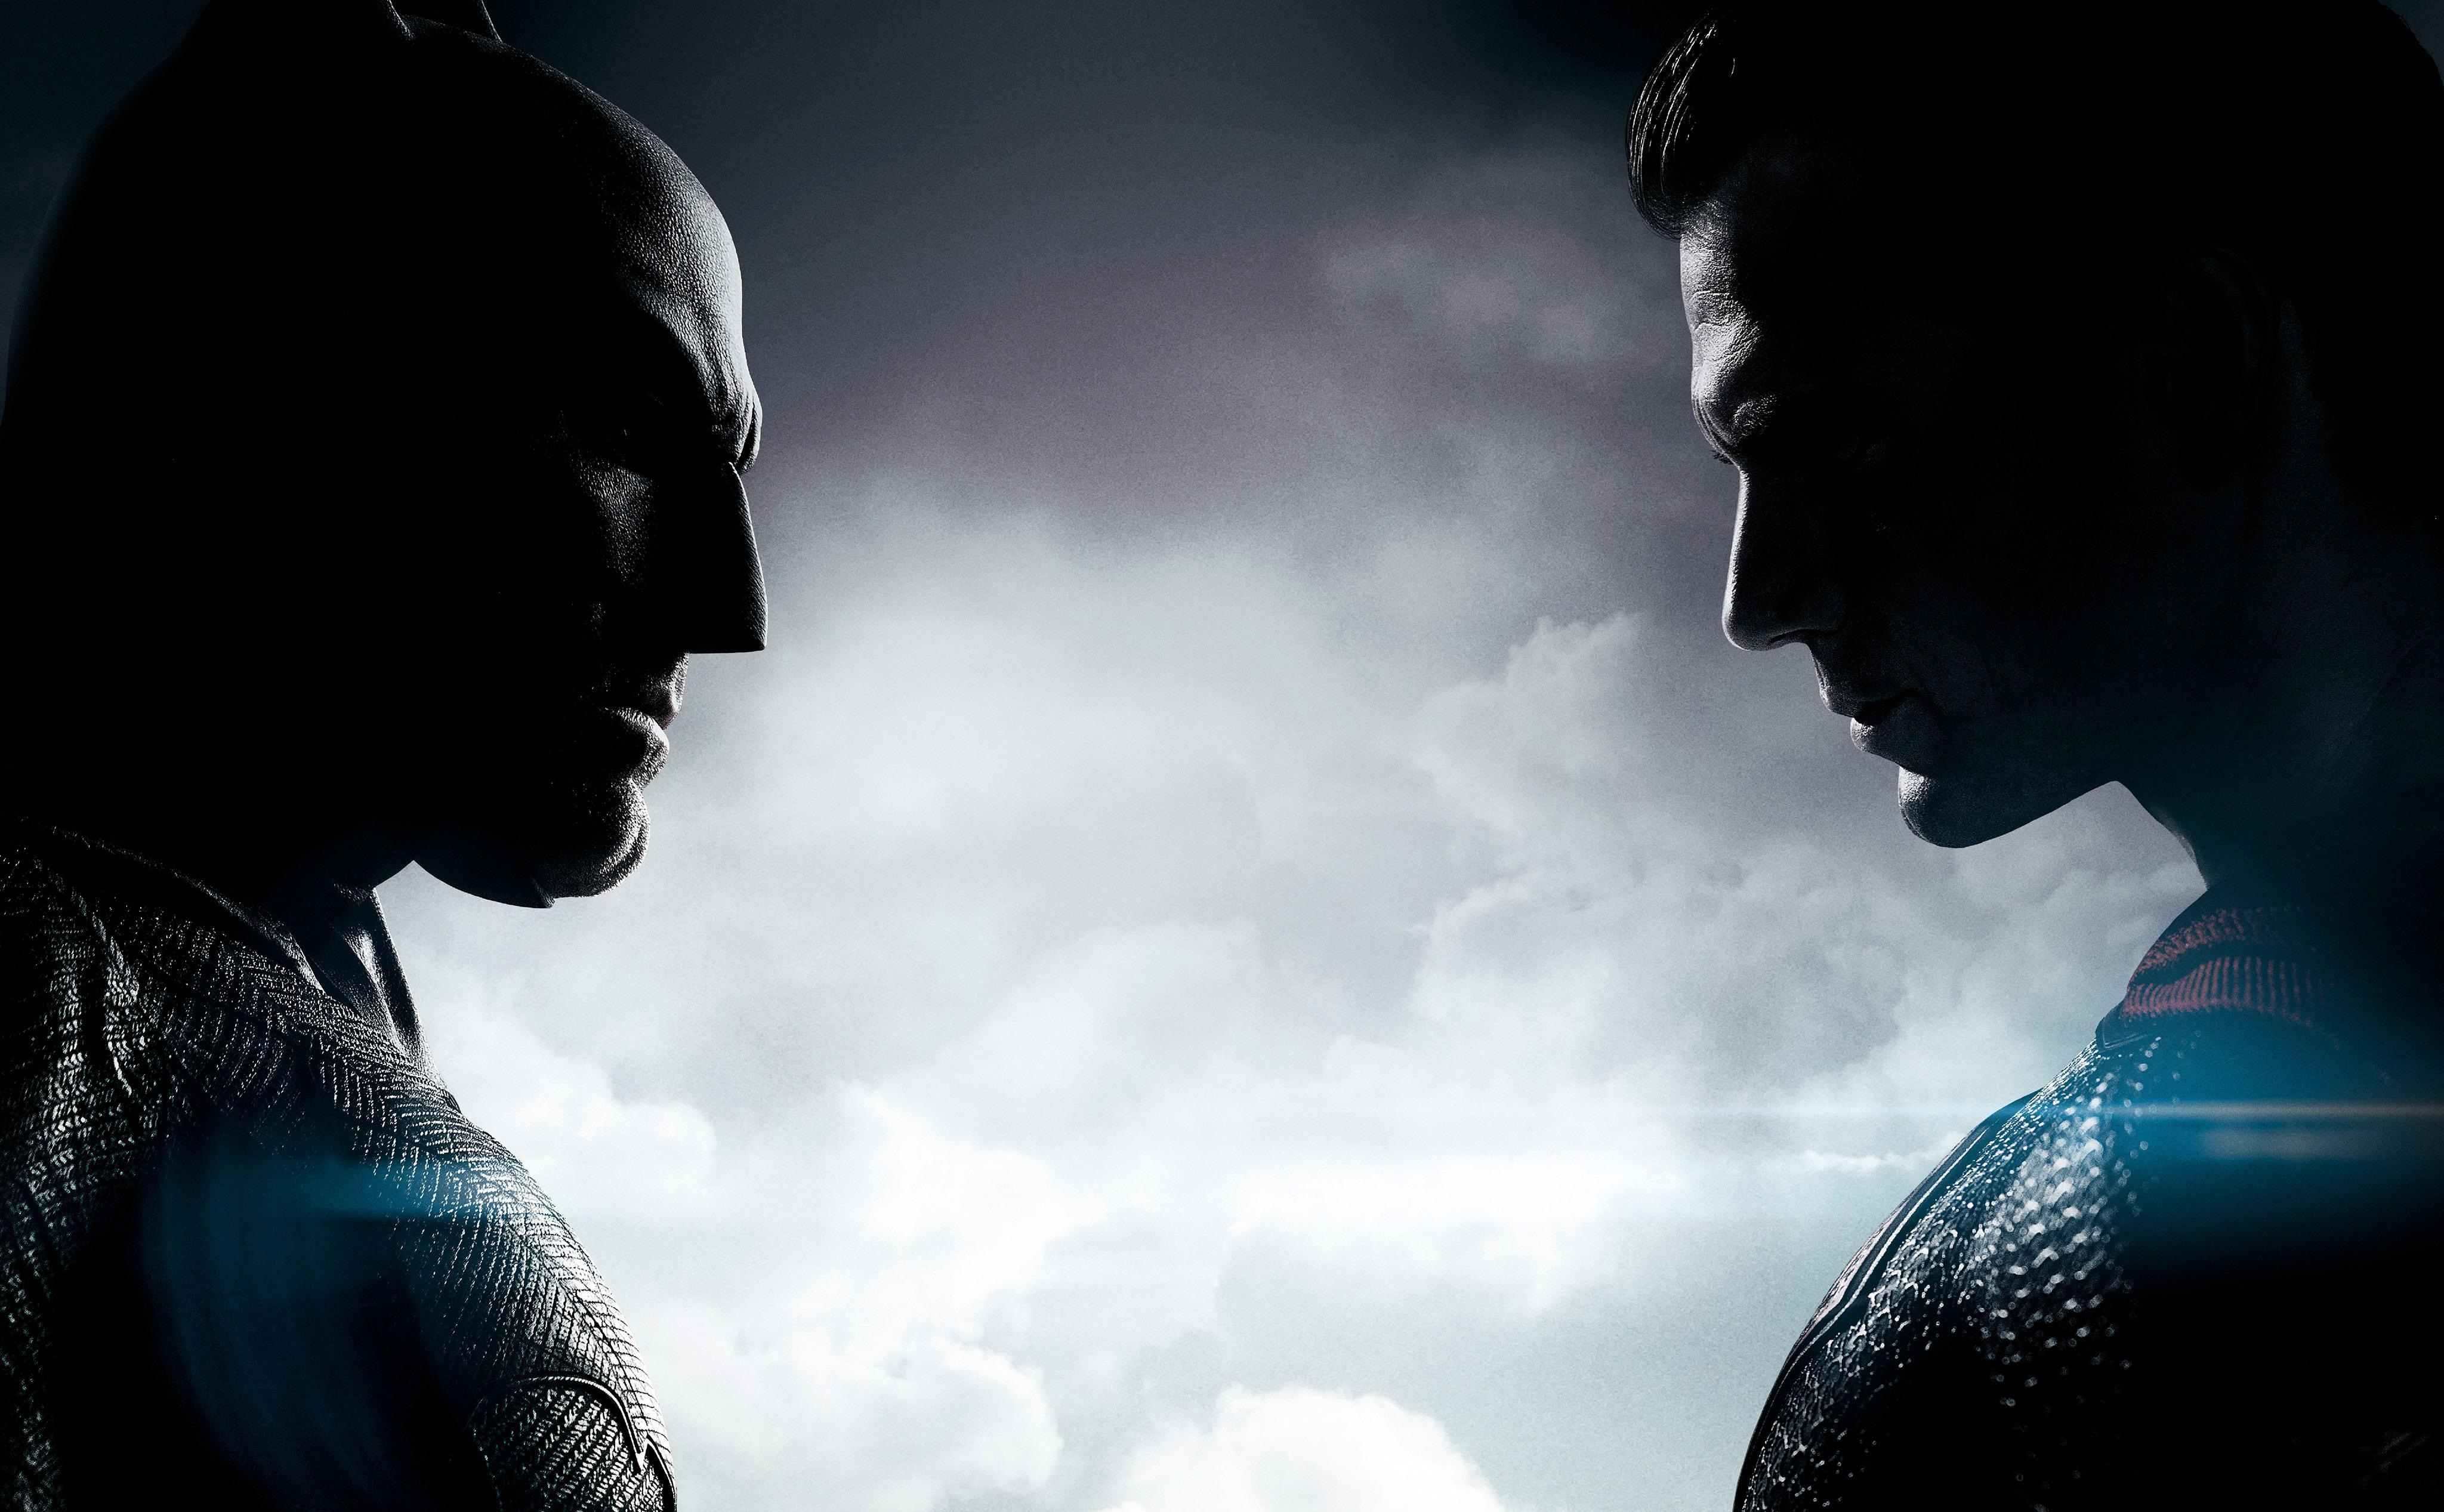 New Batman v Superman Trailer: 8 Things That Stood Out